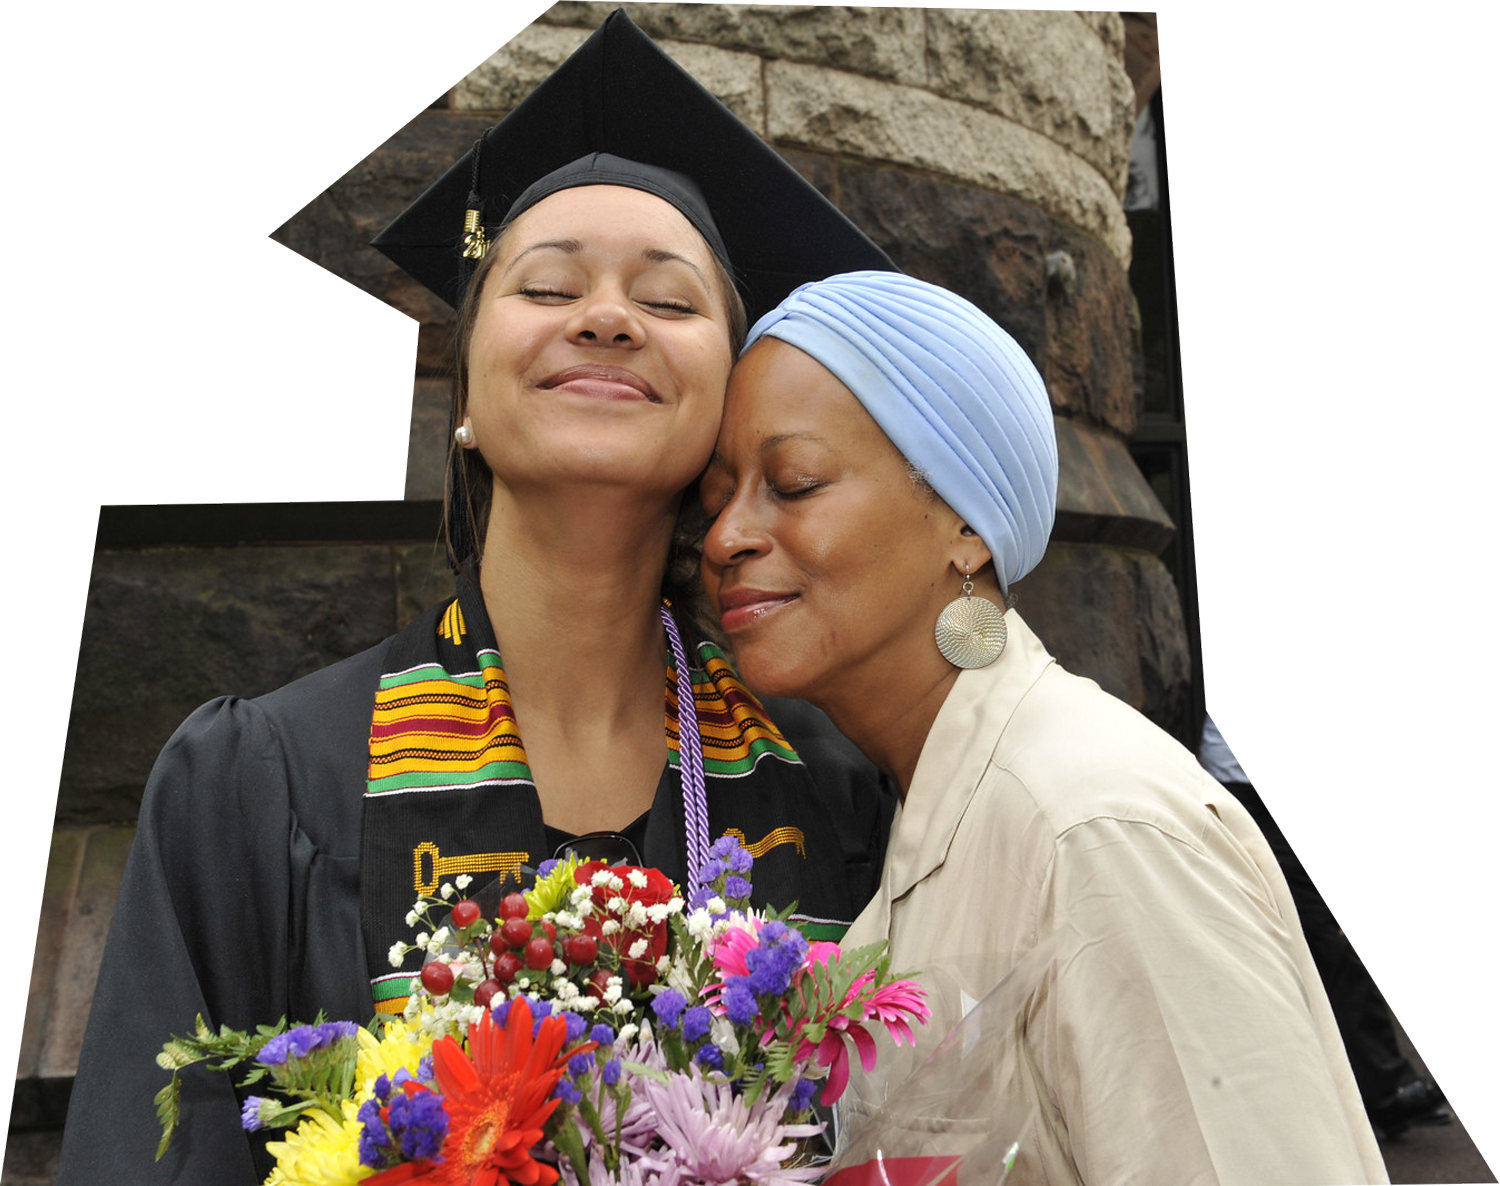 Emily McDonald '15 embracing her aunt Christiane Berry '81 outside of Alexander Hall during the 2015 Pan-African Graduation.